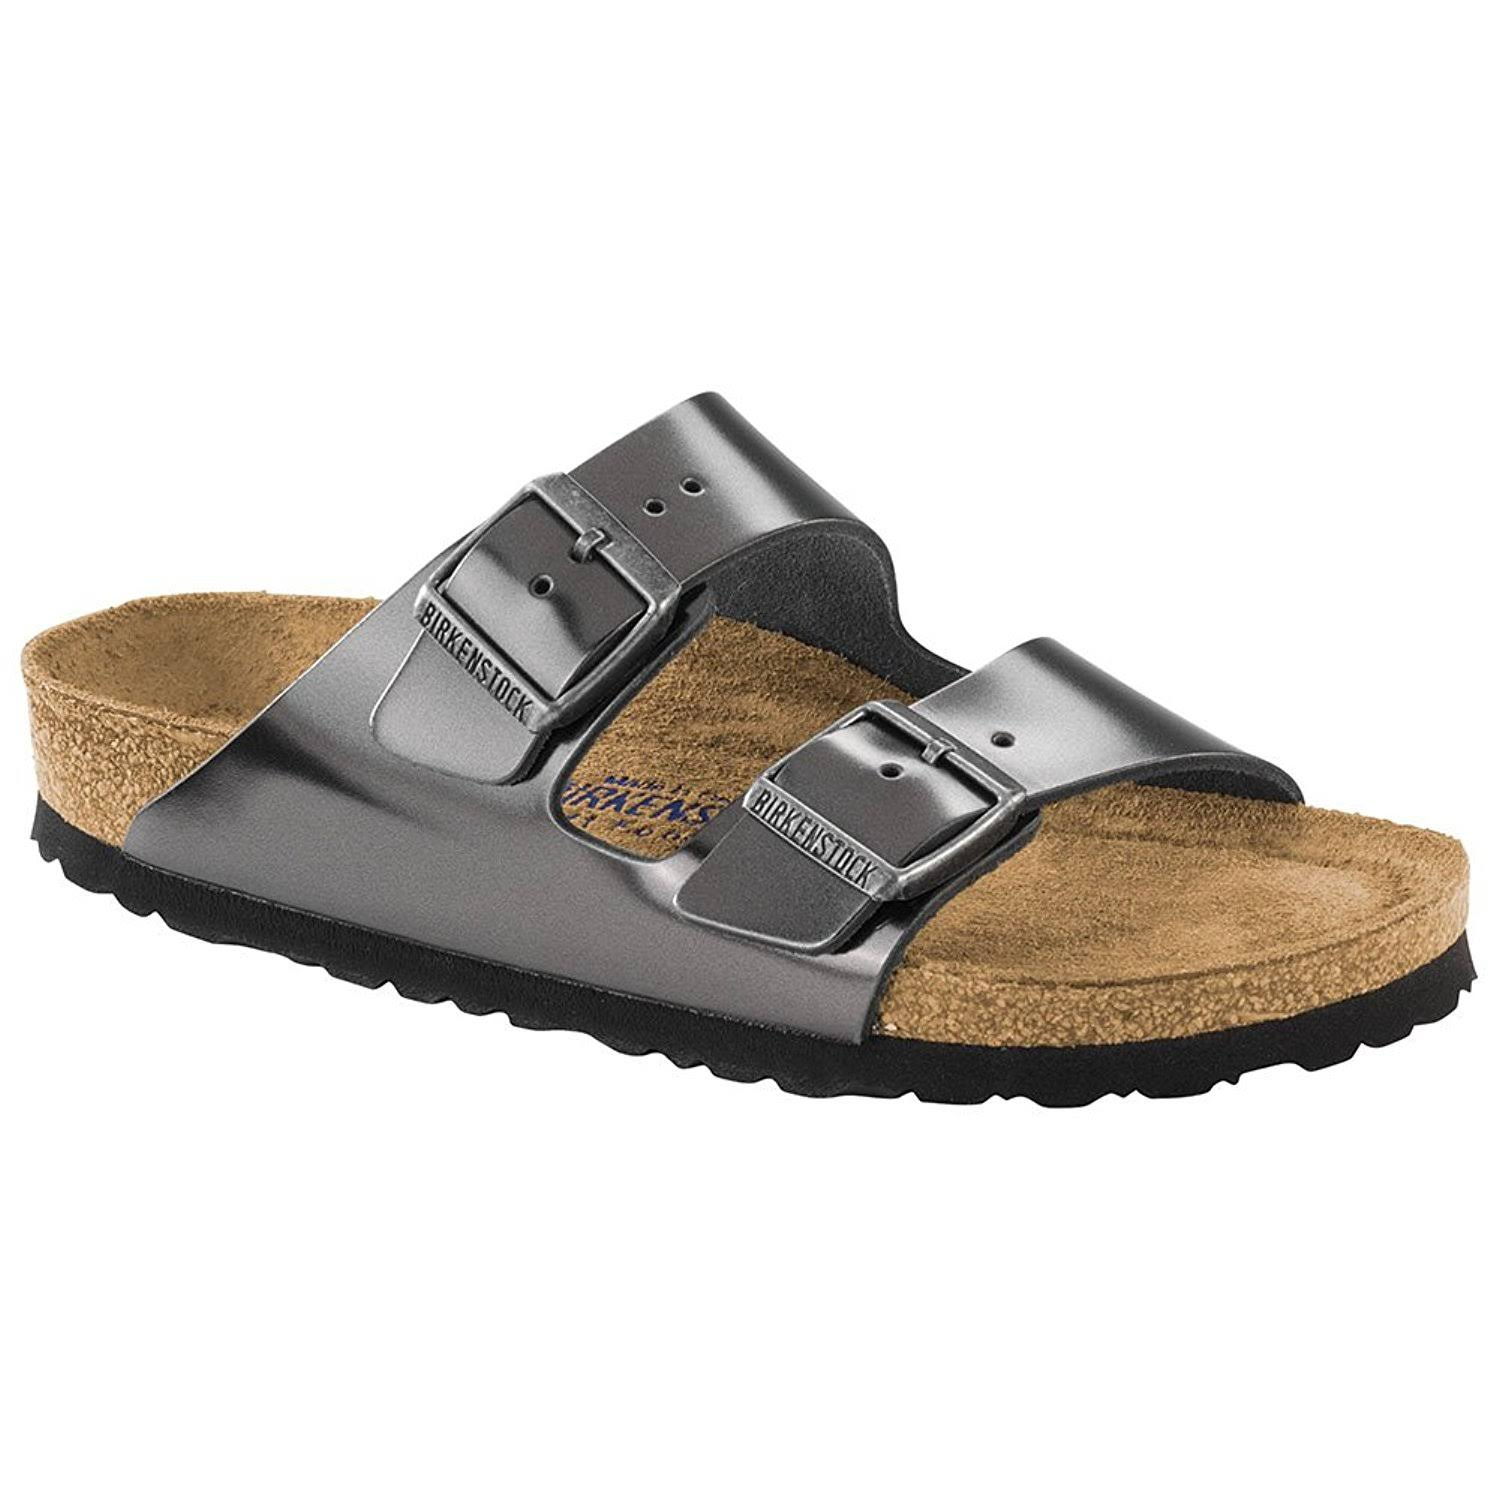 Birkenstock Arizona Soft Footbed Sandal - Size 37, Metallic